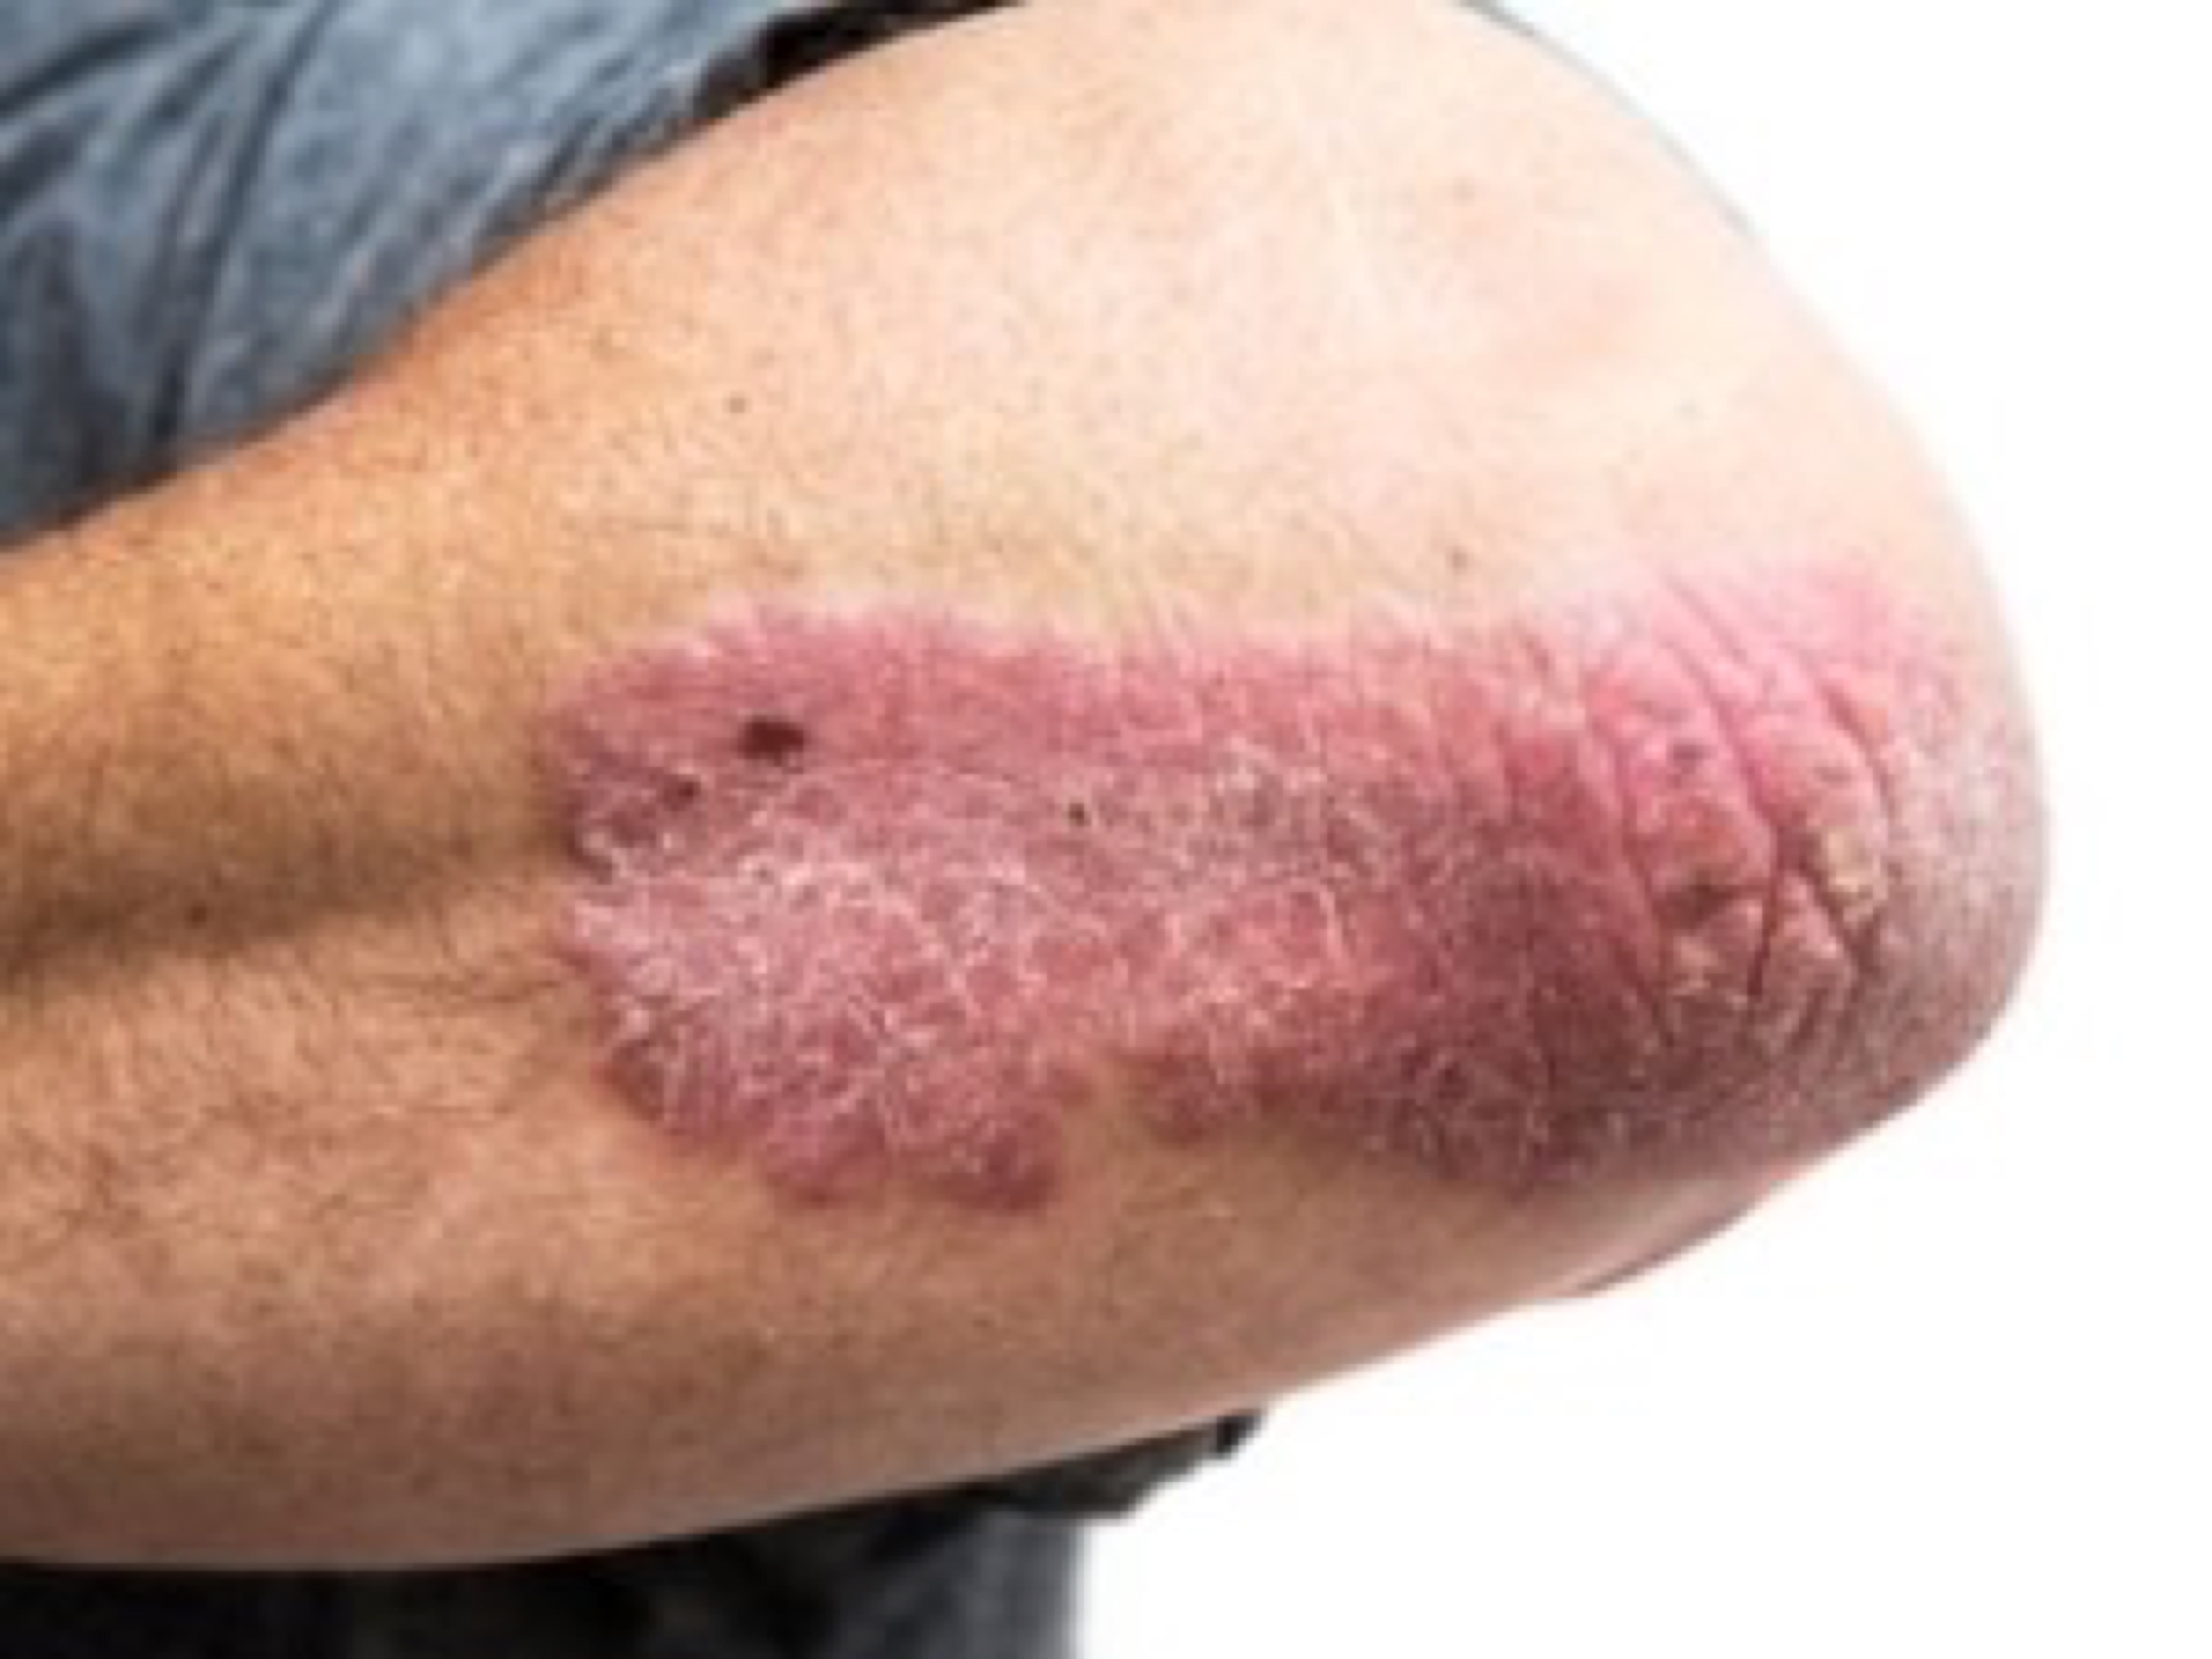 blog image - psoriasis on the elbow